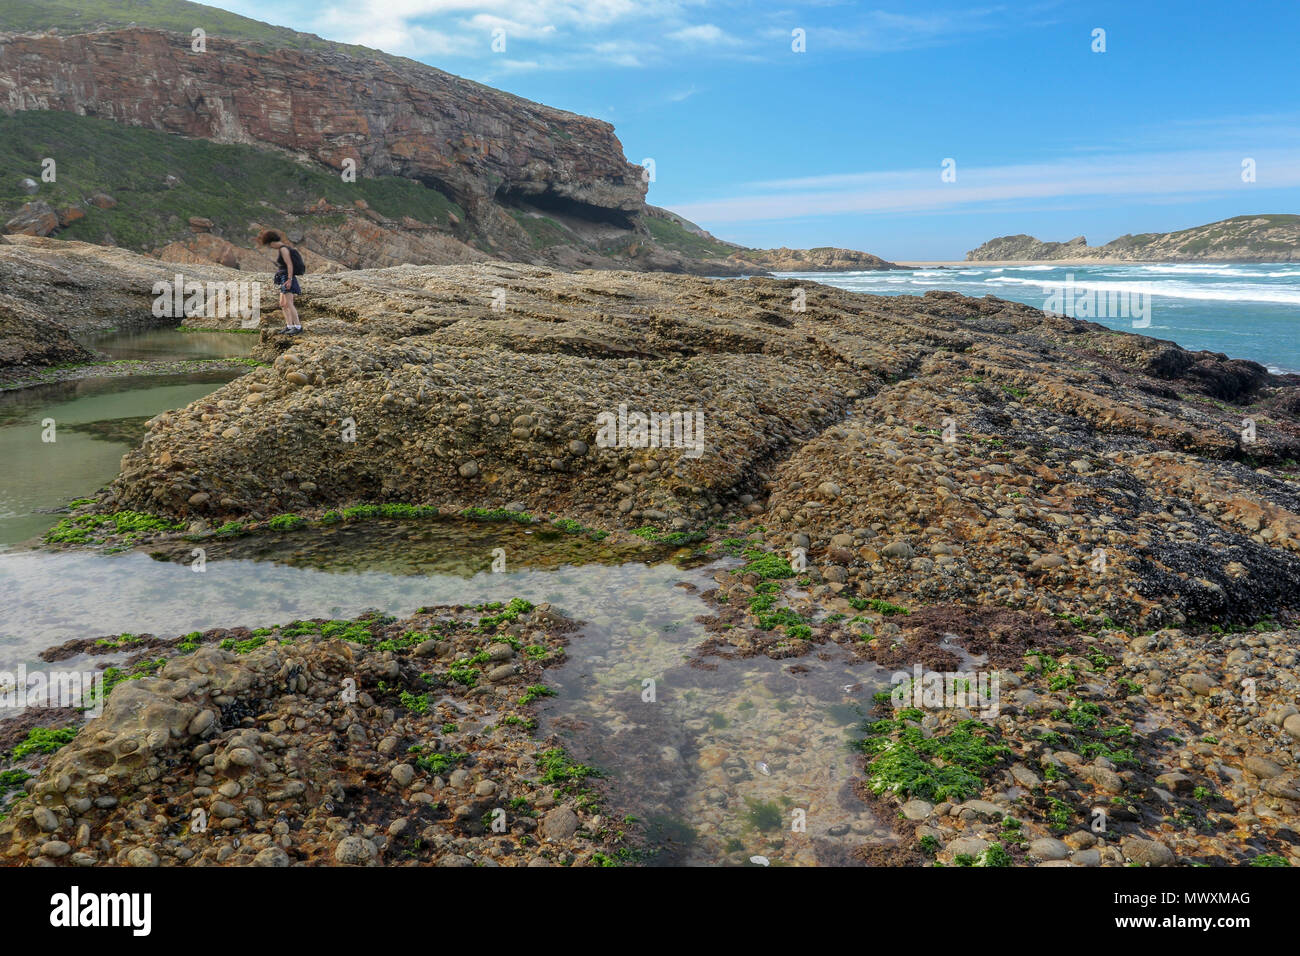 Robberg nature reserve, garden route, cape, south africa - Stock Image